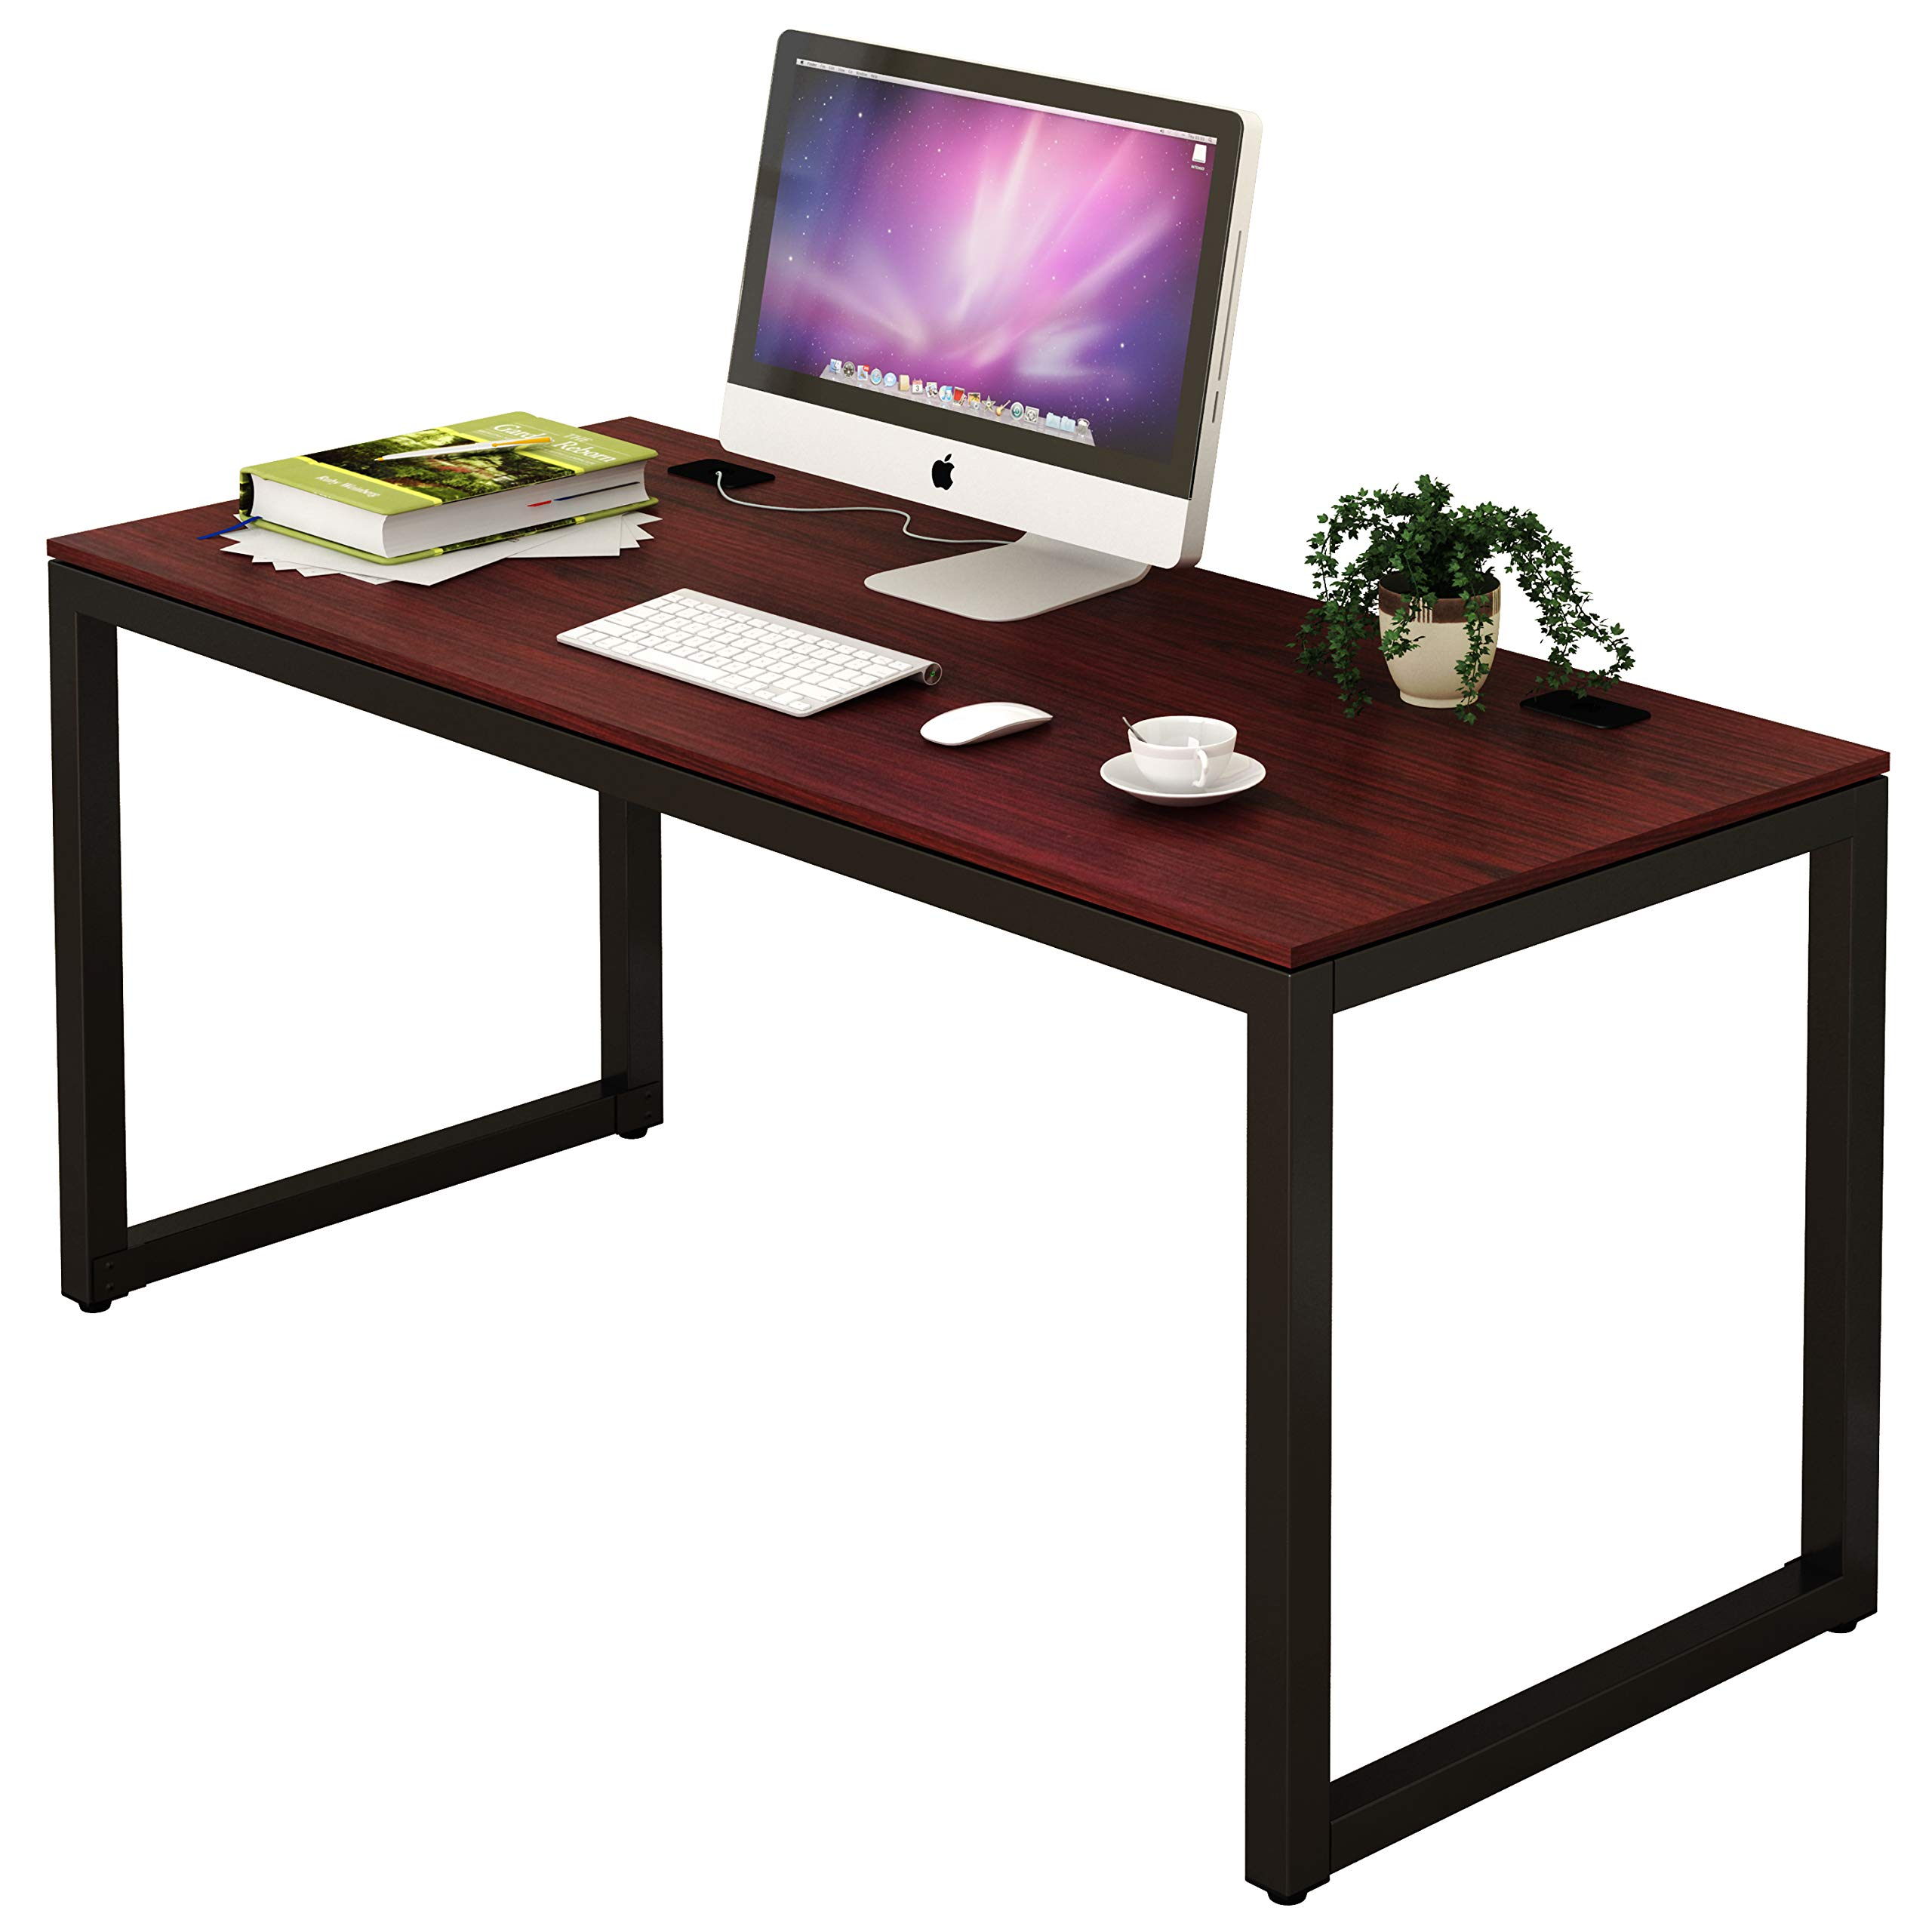 SHW Home Office 55-Inch Large Computer Desk, Cherry by SHW (Image #2)